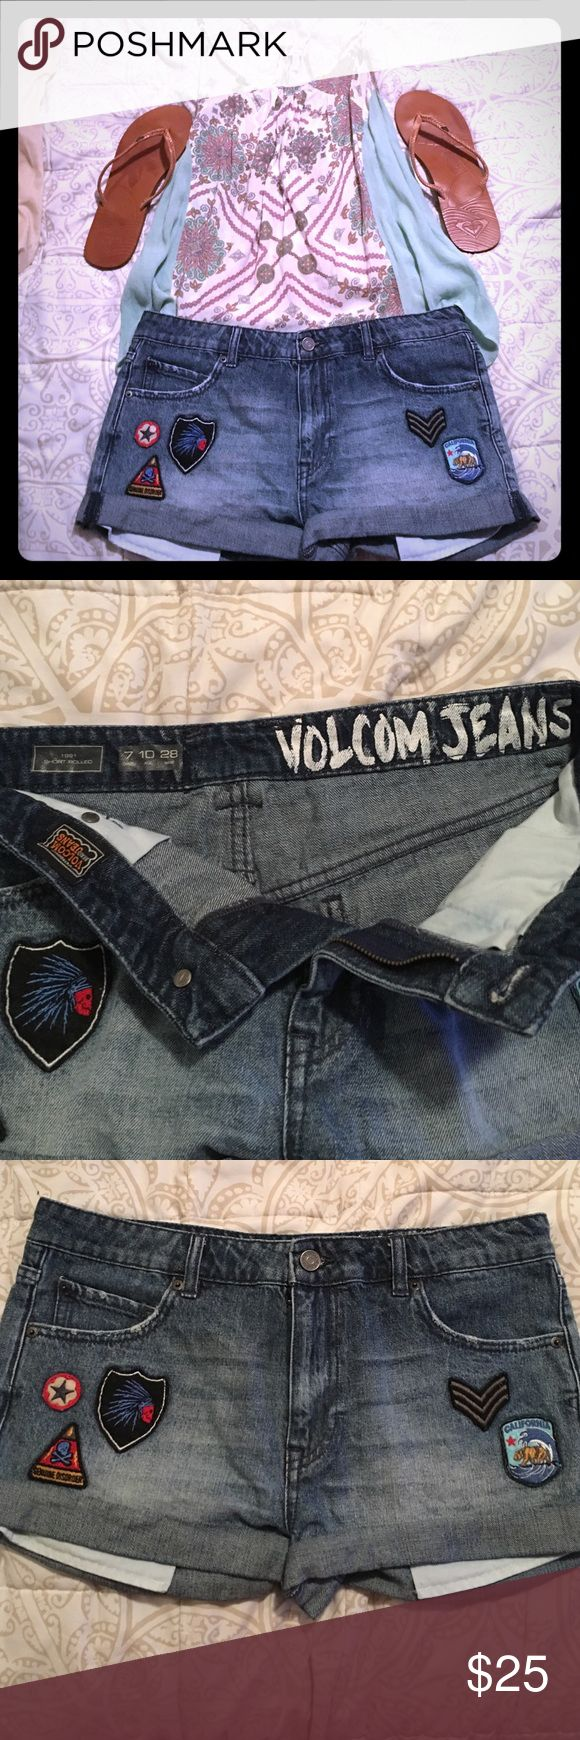 *NWOT Volcom Women's / Juniors Shorts with patches Never worn. Size 7. Great condition. Goes great with everything but can be bundled with any of the items listed. EVERYTHING MUST GO! Make an offer or make a bundle! We accept 95% of first offers with no back and forth haggling. Volcom Shorts Jean Shorts